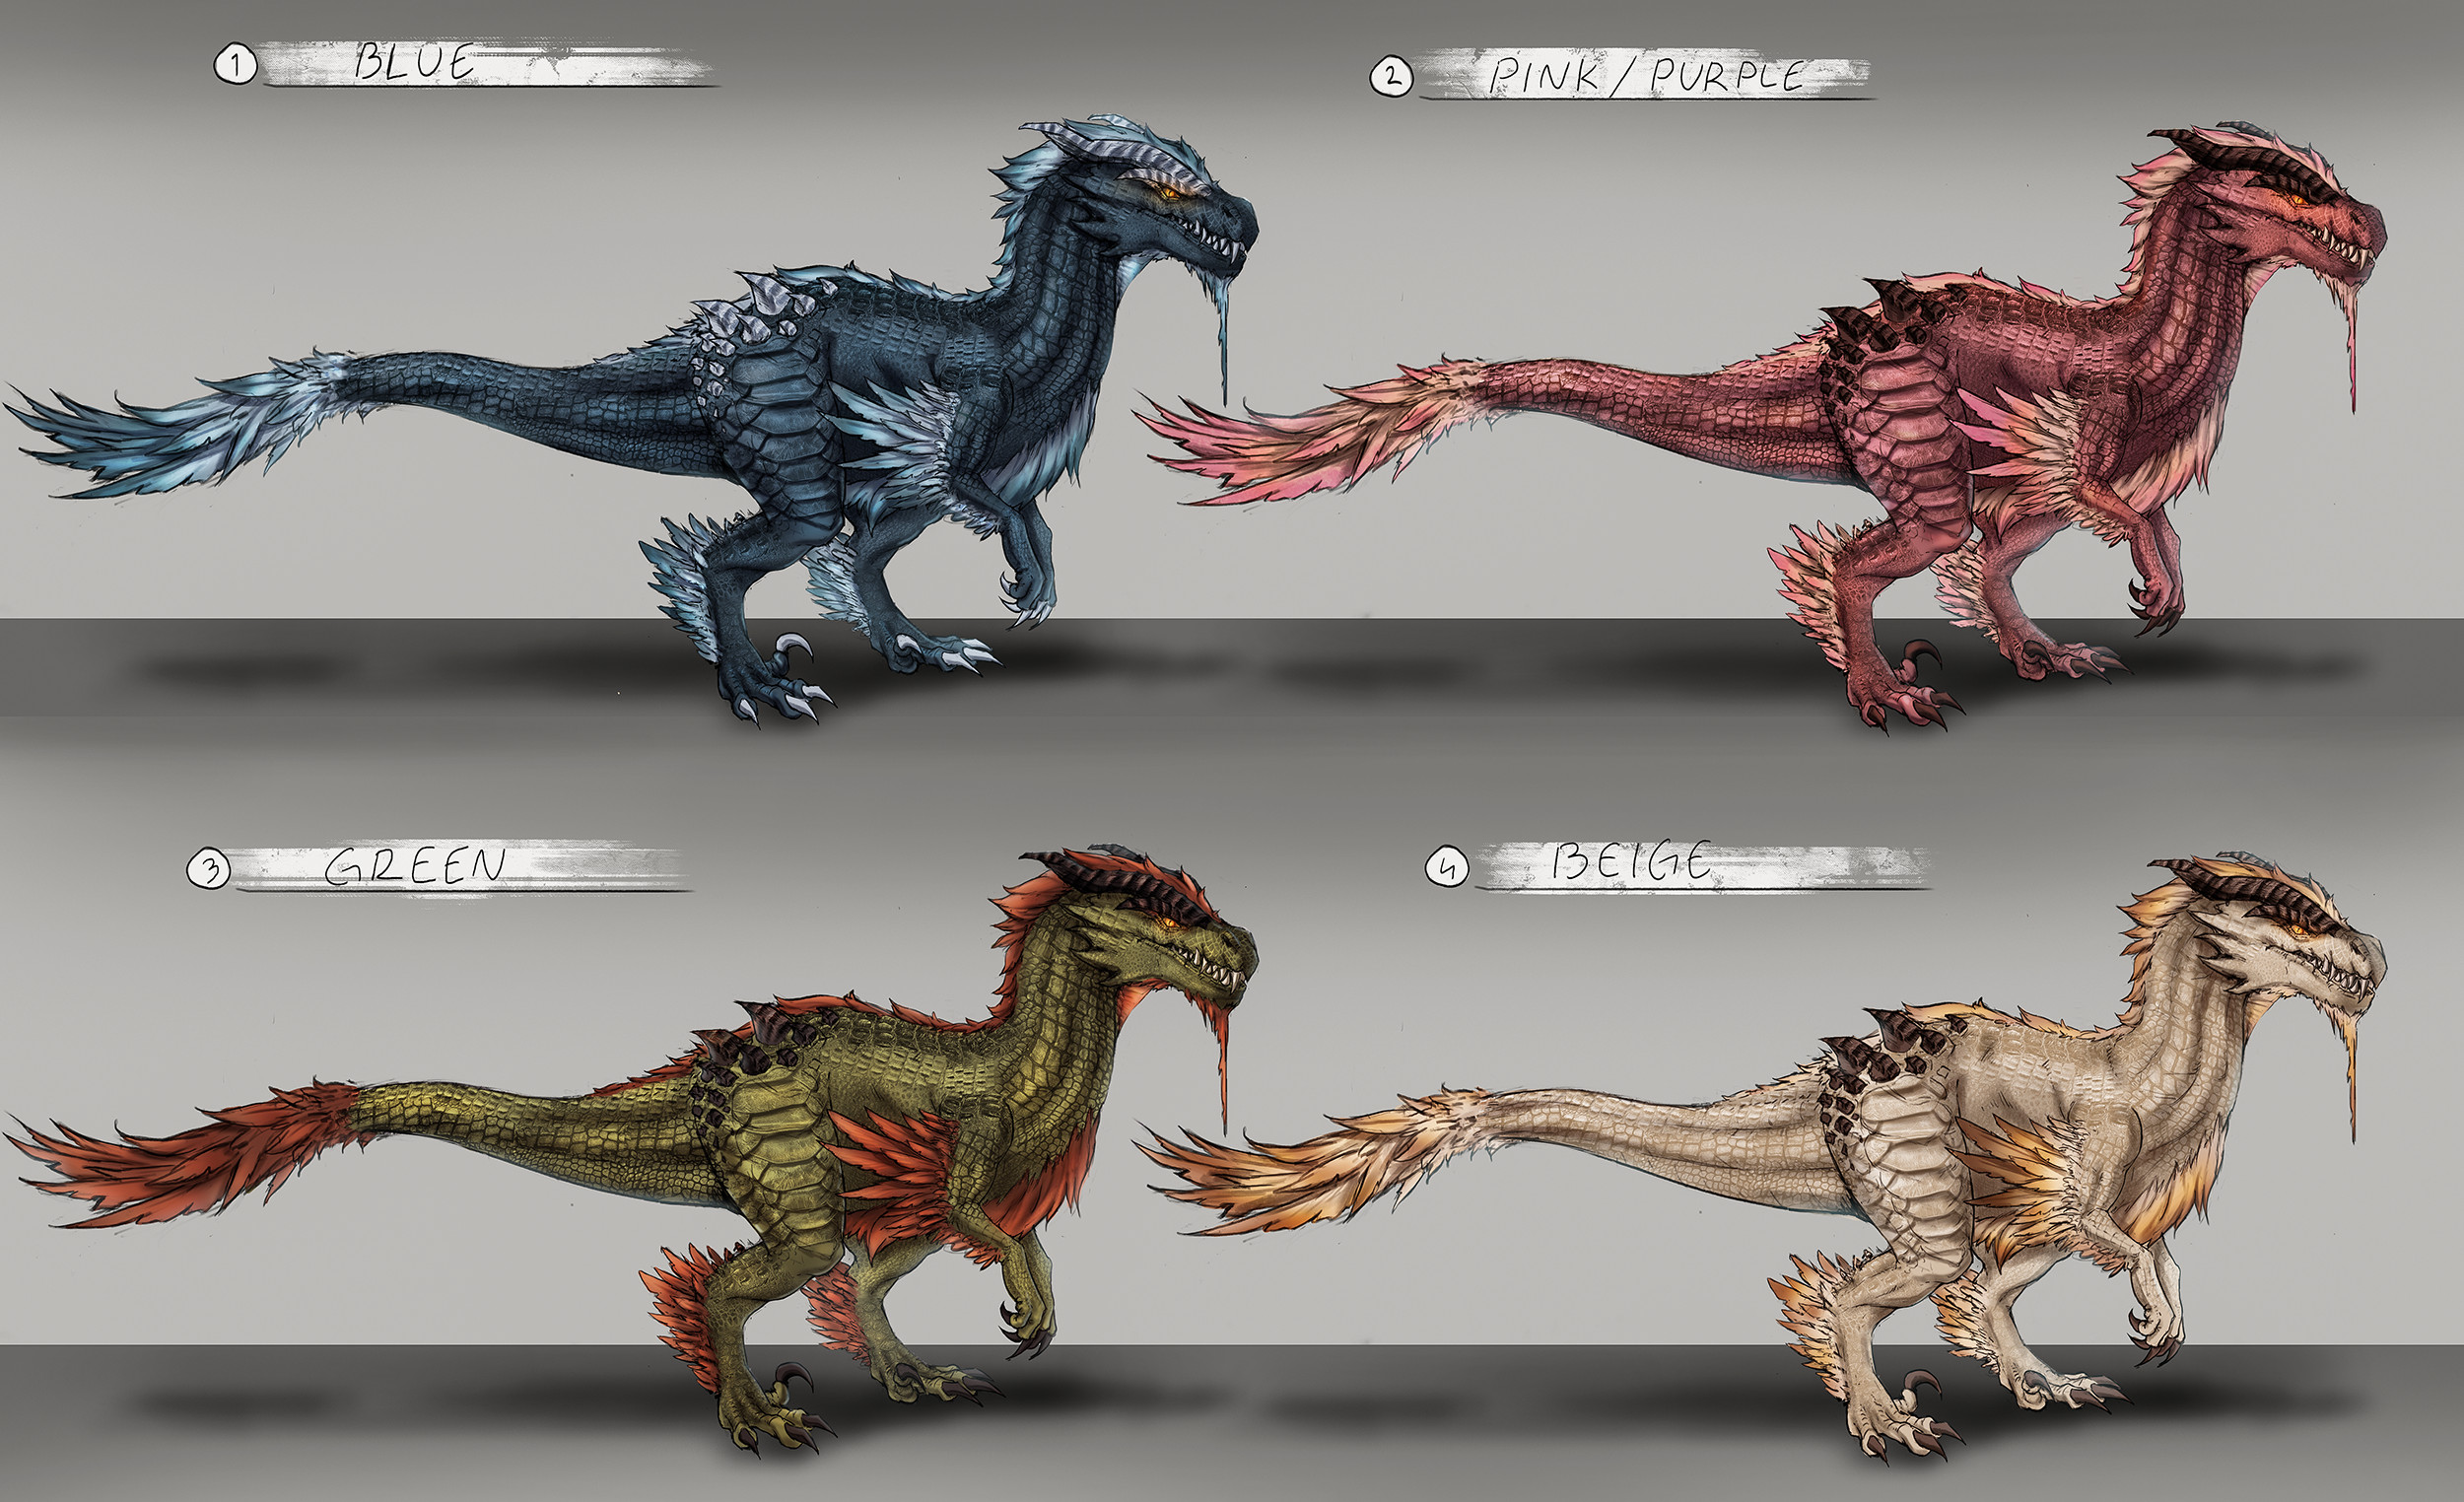 Color options. Of course everyone wants a raptor in their own favorite color!